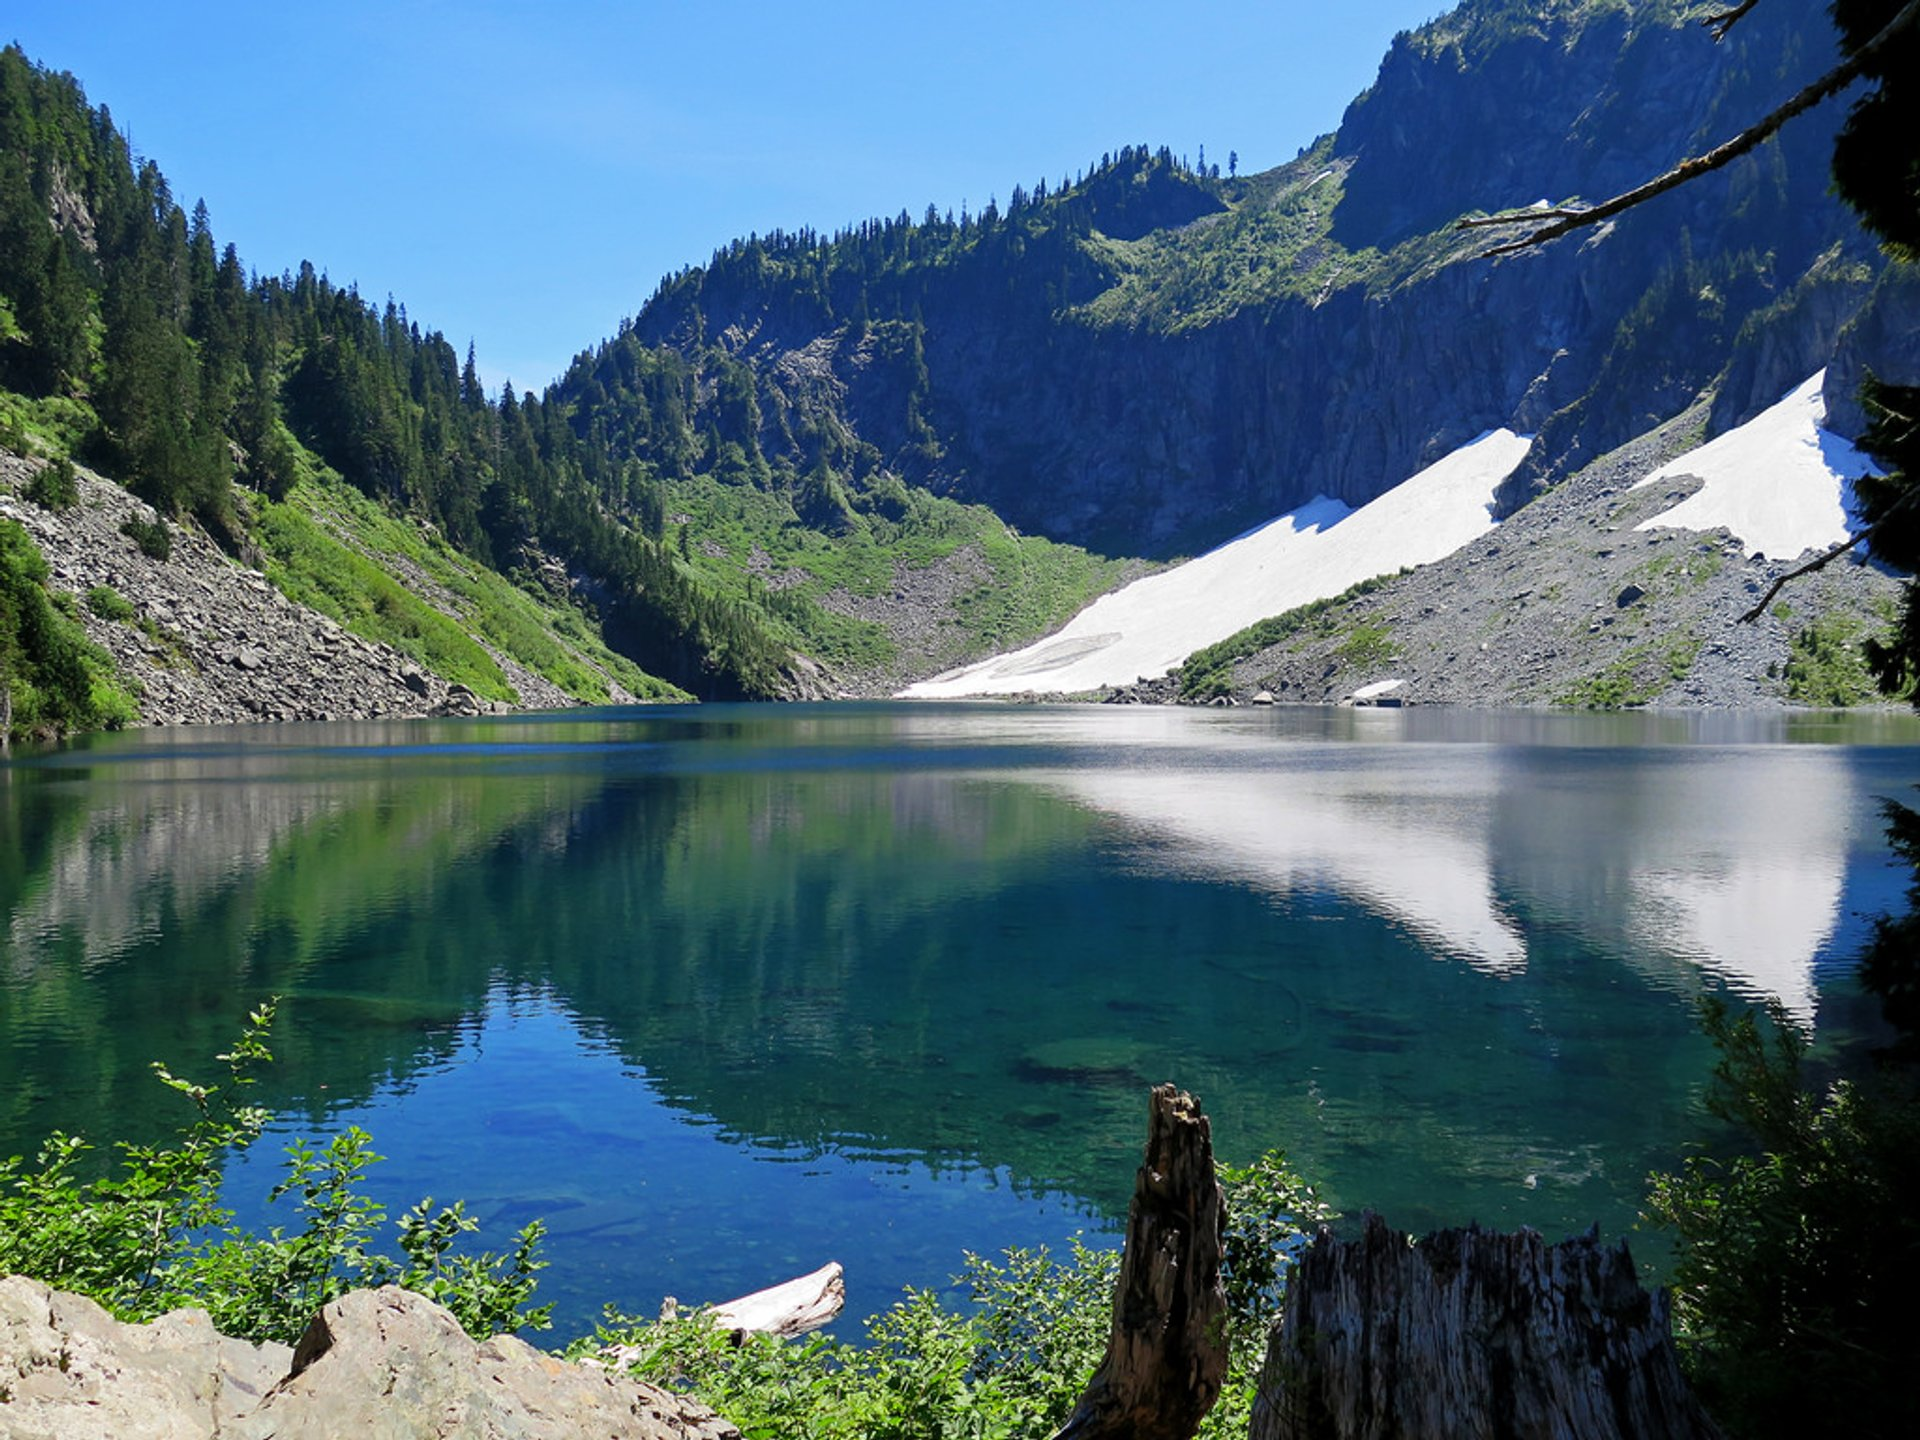 Best time to see Lake Serene & Bridal Veil Falls in Seattle 2020